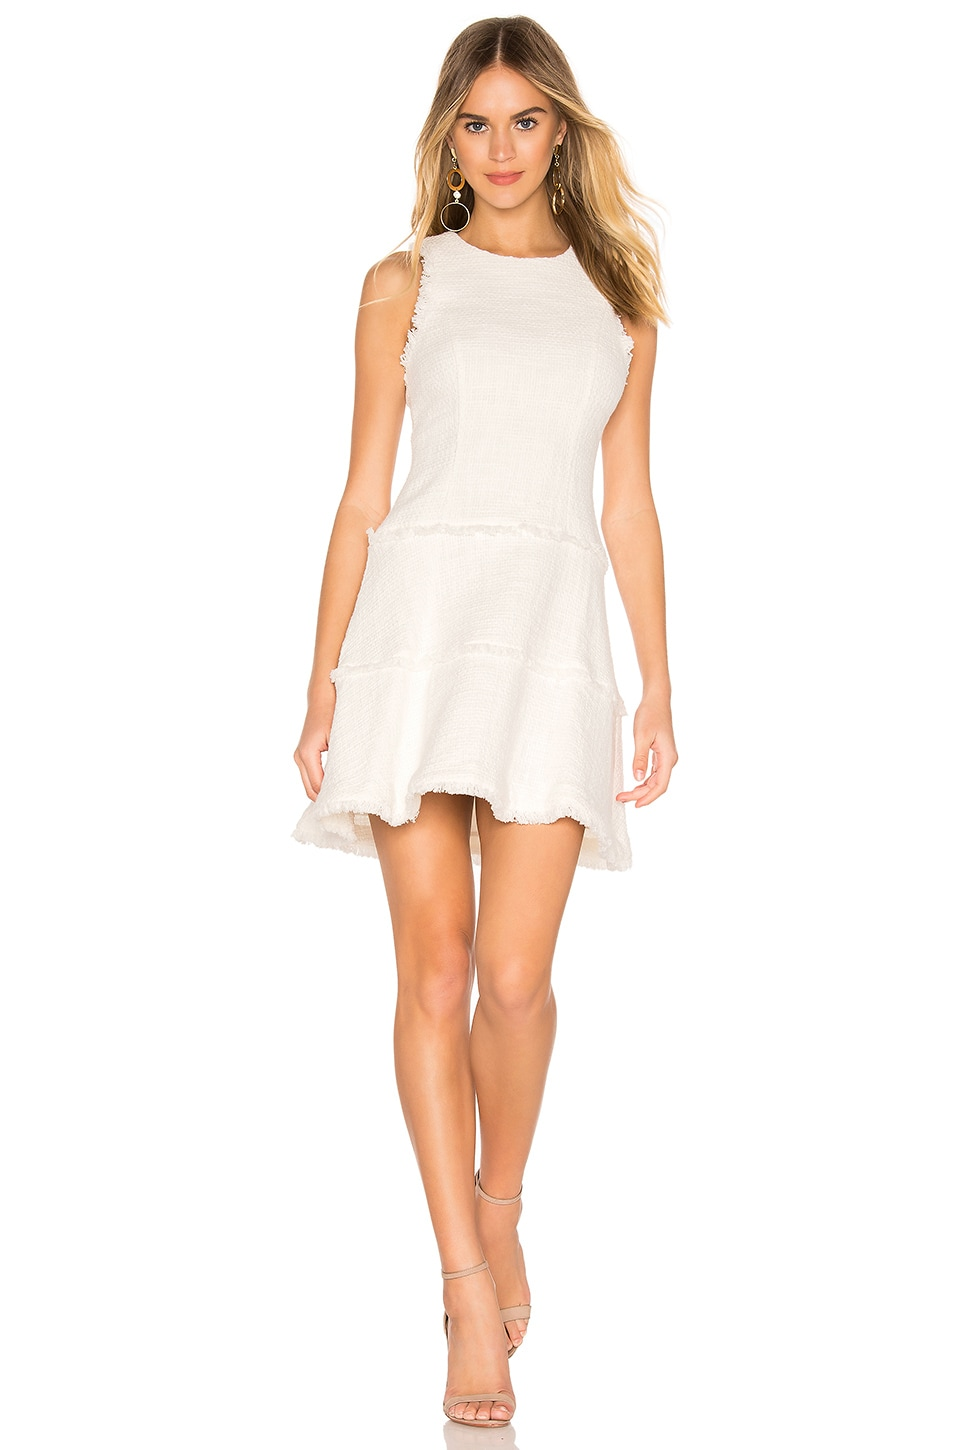 LIKELY Jewel Dress in Ivory